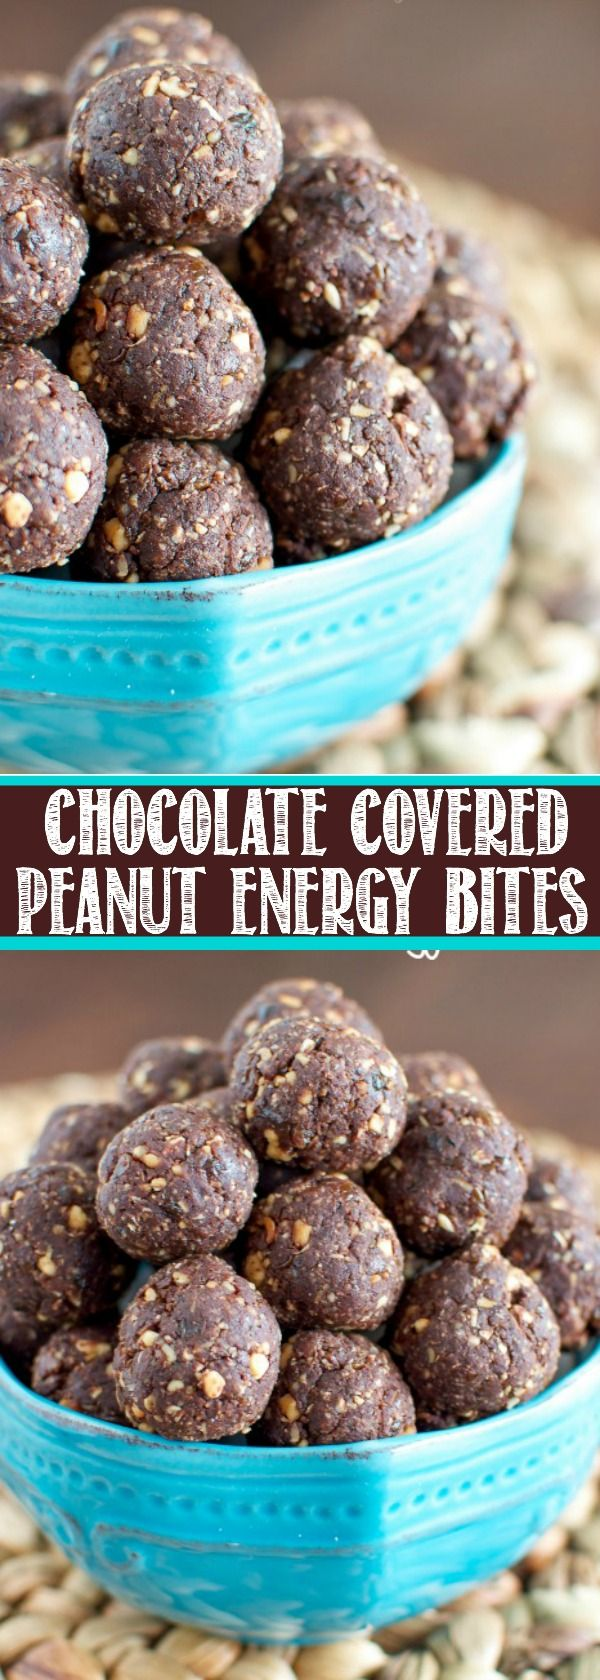 Chocolate Covered Peanut Energy Bites are a simple, no bake snack that satisfy your hunger and your sweet tooth in a healthy, delicious way!!